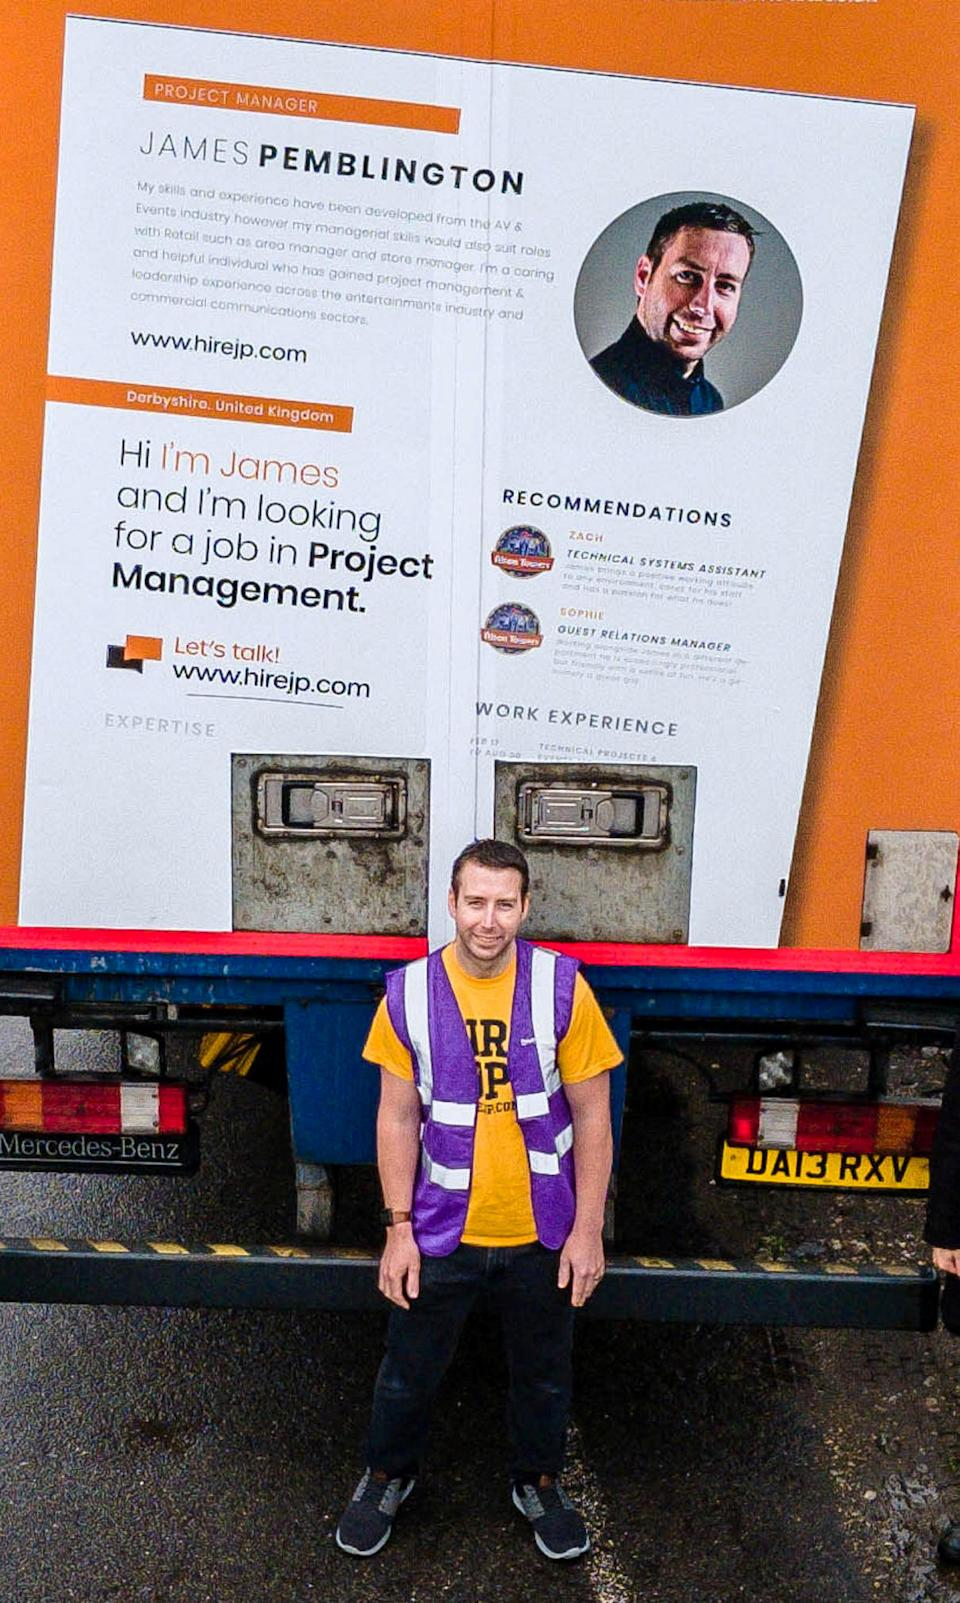 James Pemblington in front of the lorry with his CV on the back. (SWNS)